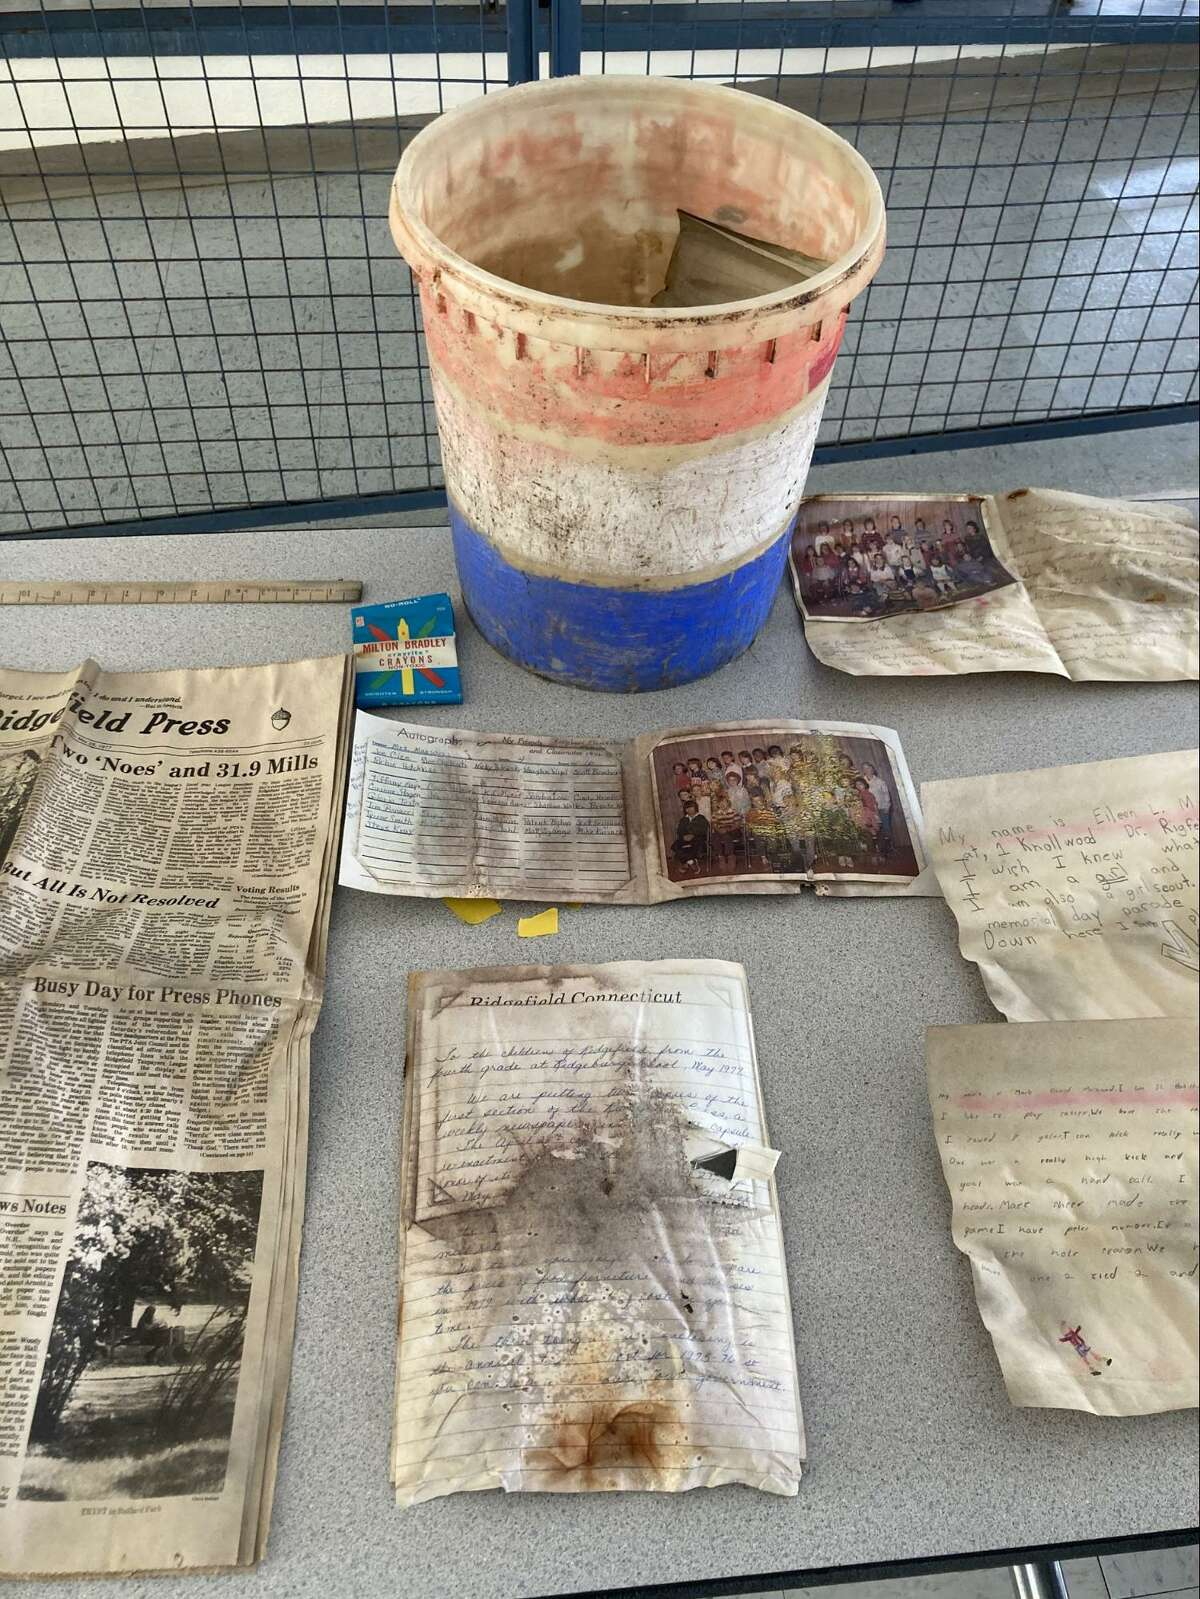 Some of the objects found in the container, including a copy of the Ridgefield Press